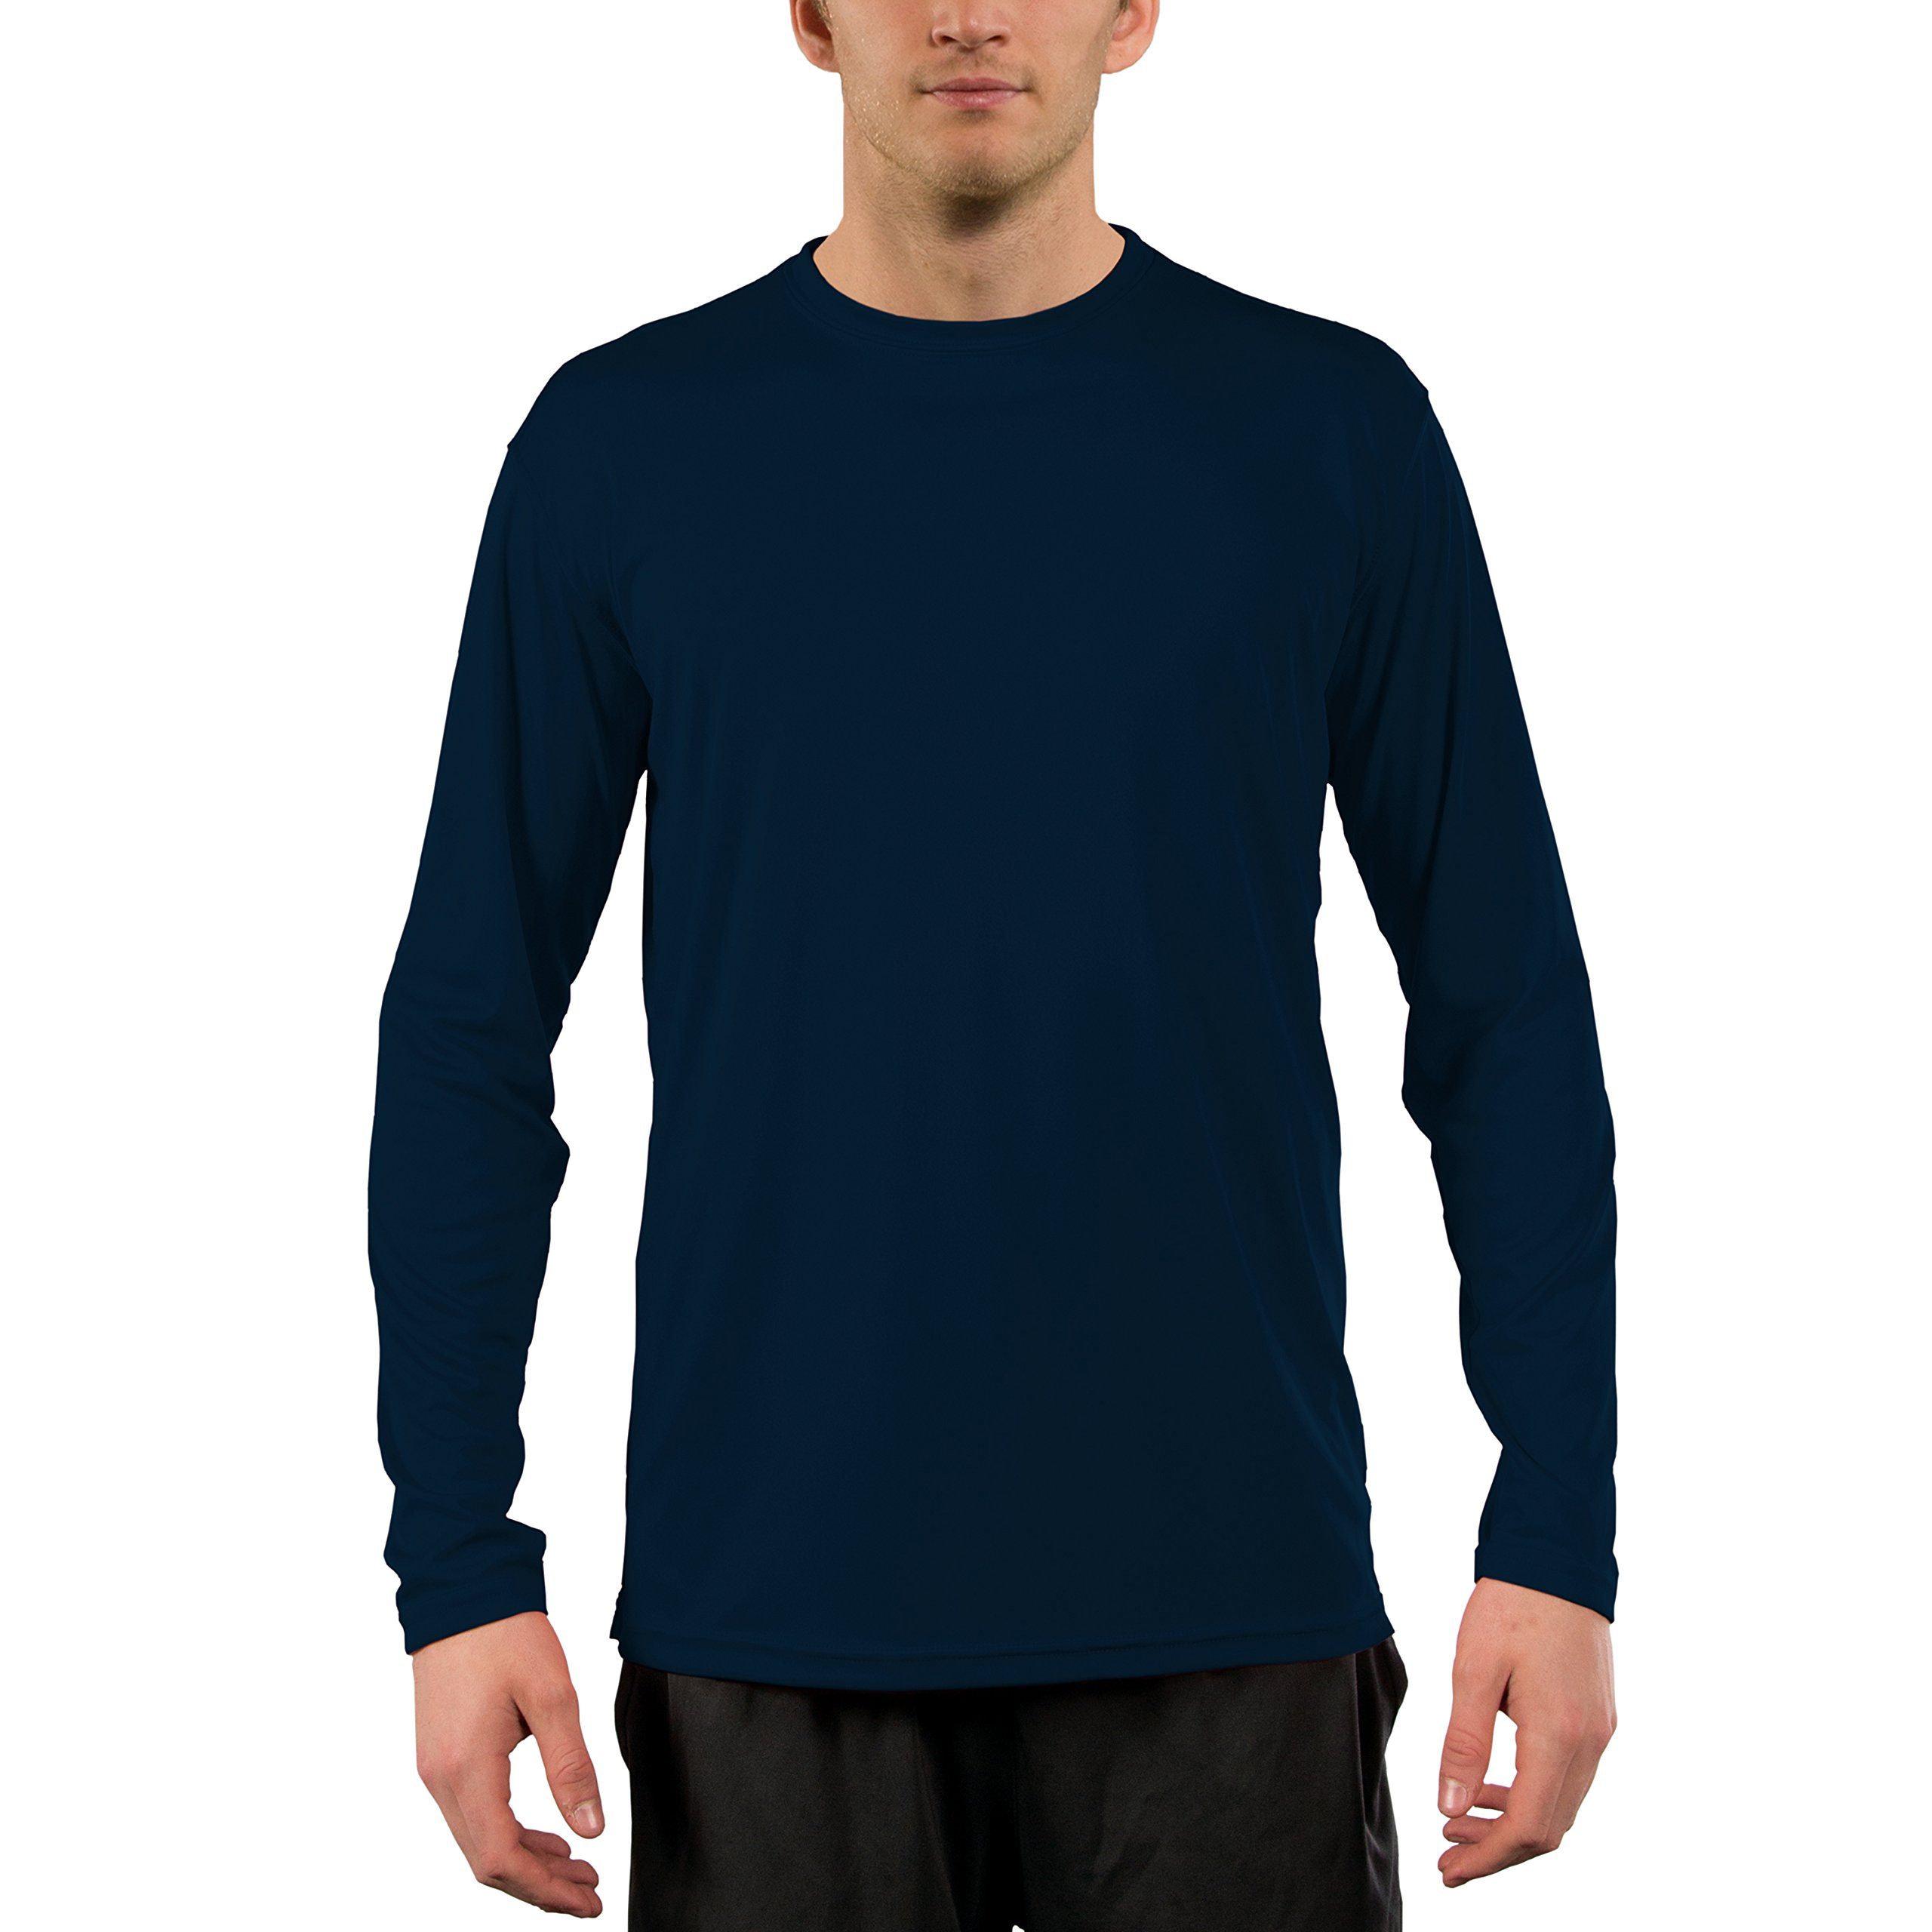 02b21264cc62b Vapor Apparel Men s UPF 50+ UV Sun Protection Performance Long Sleeve T- Shirt